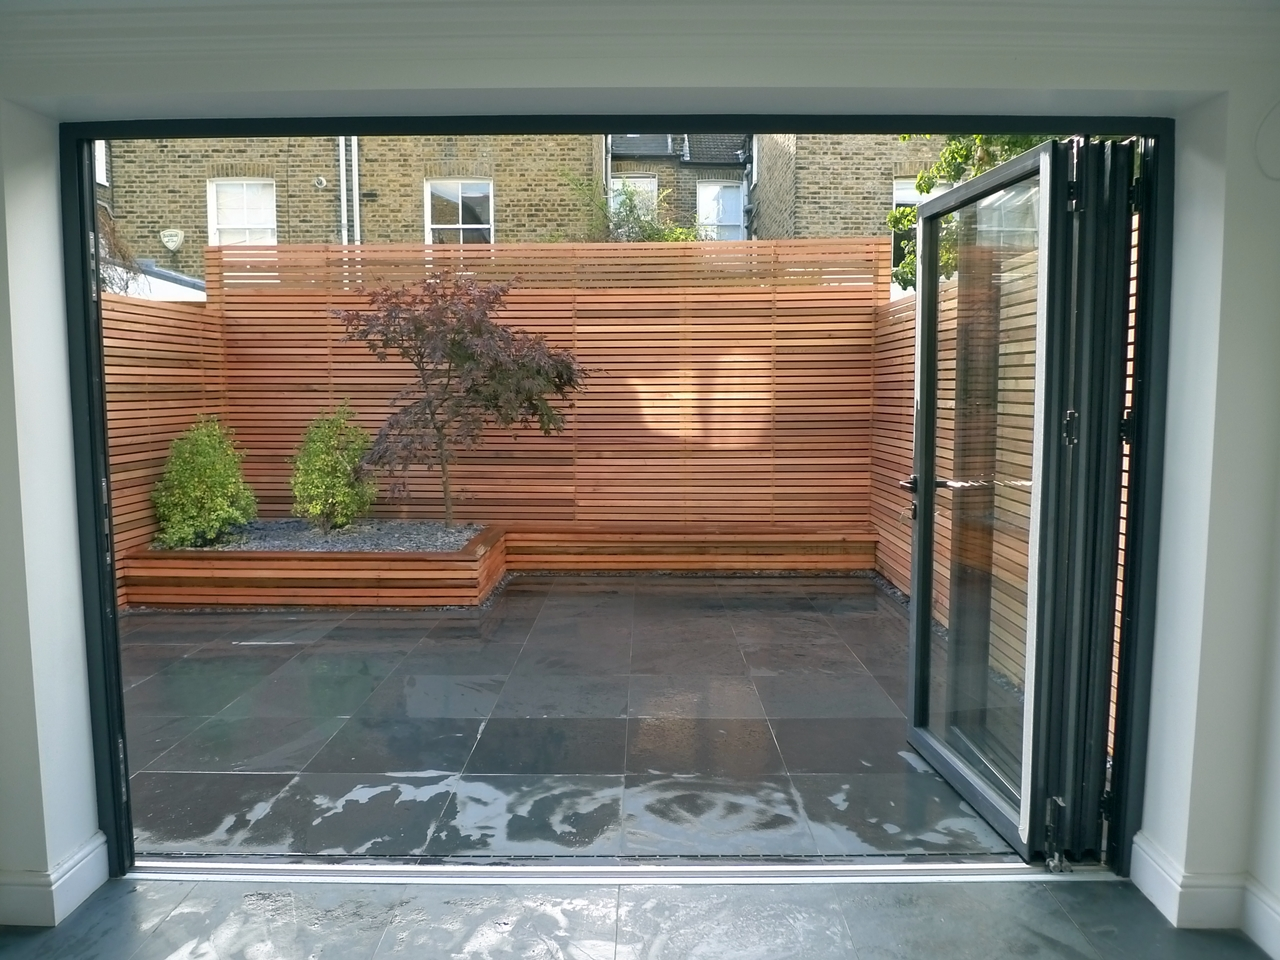 Garden Screen Designs find this pin and more on fences screens dividers Western Red Cedar Par 20 X 70mm Par Fencing Southgate Timber Hardwood Decking Cedar Cladding Oak Mouldings